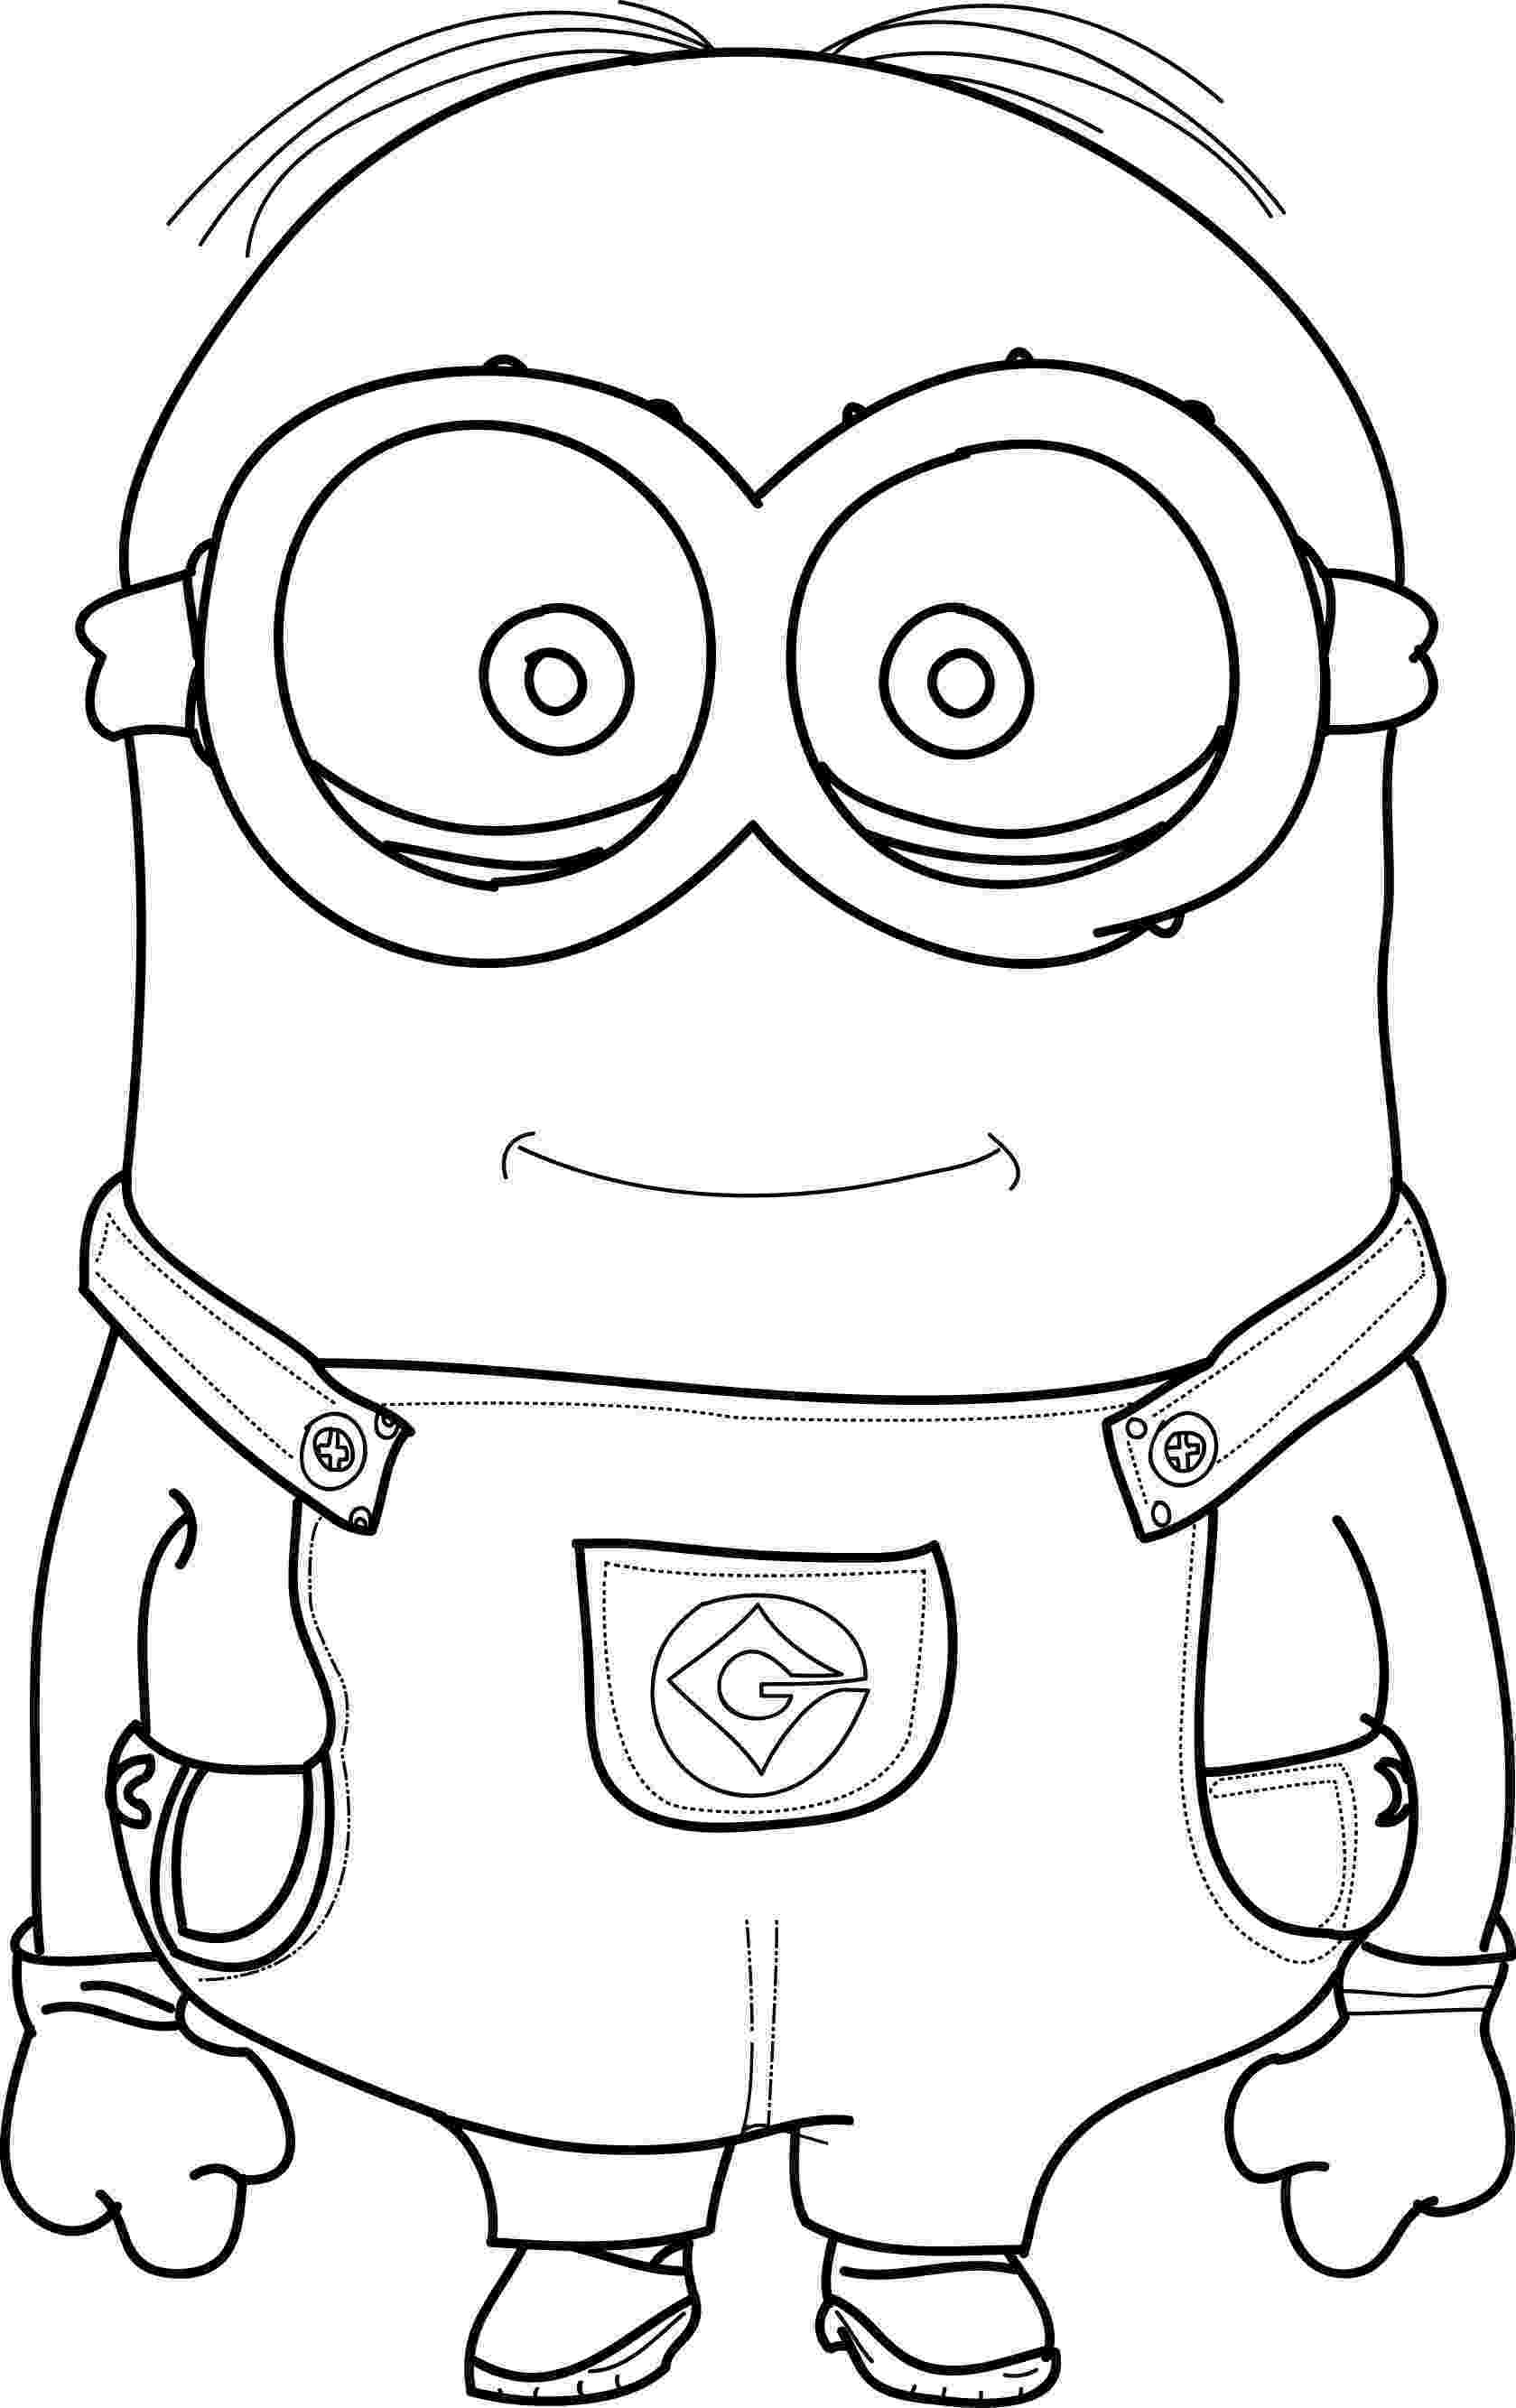 printable colouring pages minions minions coloring pages getcoloringpagescom colouring printable minions pages